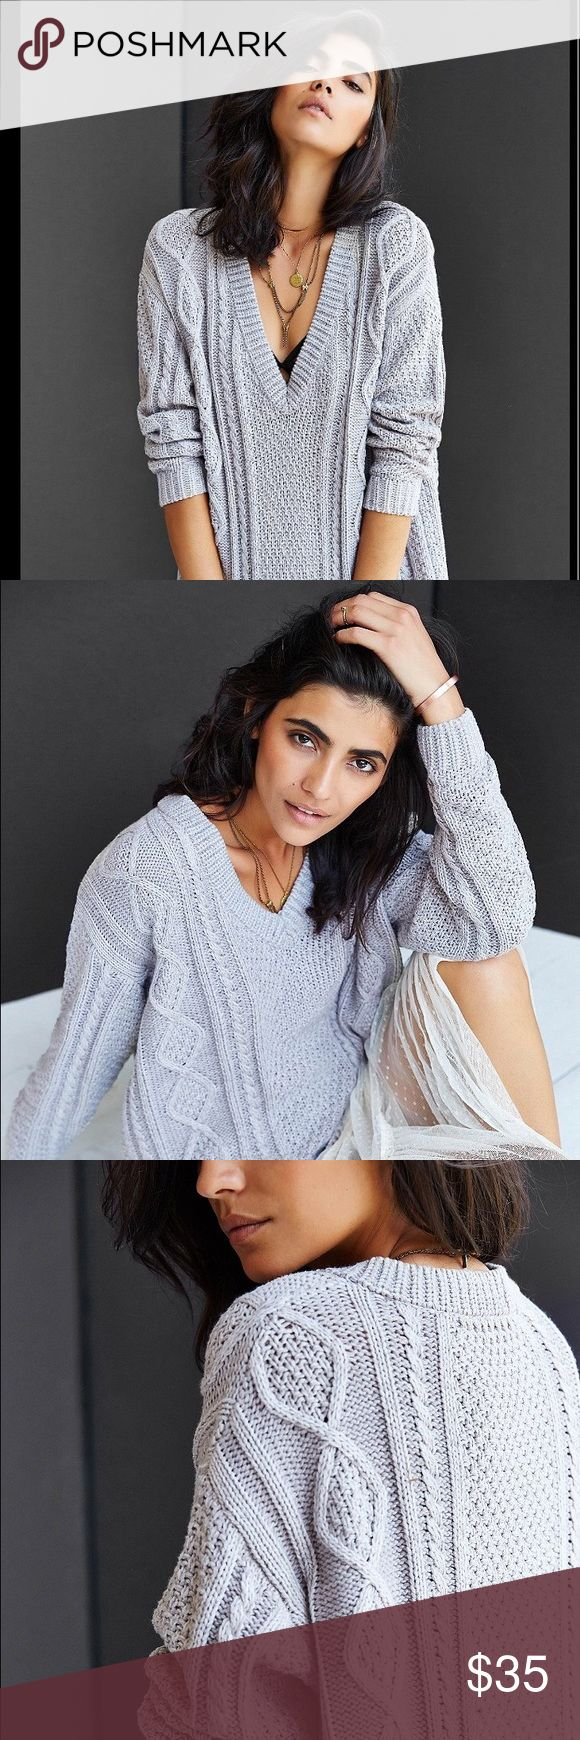 BDG cable knit sweater Purchase online from Urban Outfitters. Great condition, lightly used. Grey v-neck cable knit sweater. Urban Outfitters Sweaters V-Necks